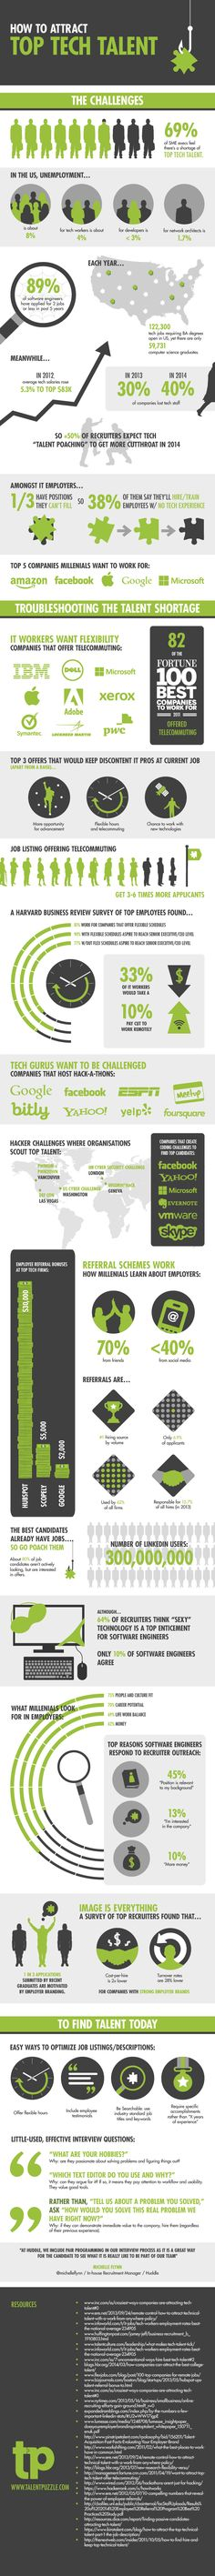 How Your Company Can Attract Top Tech Talent #infographic